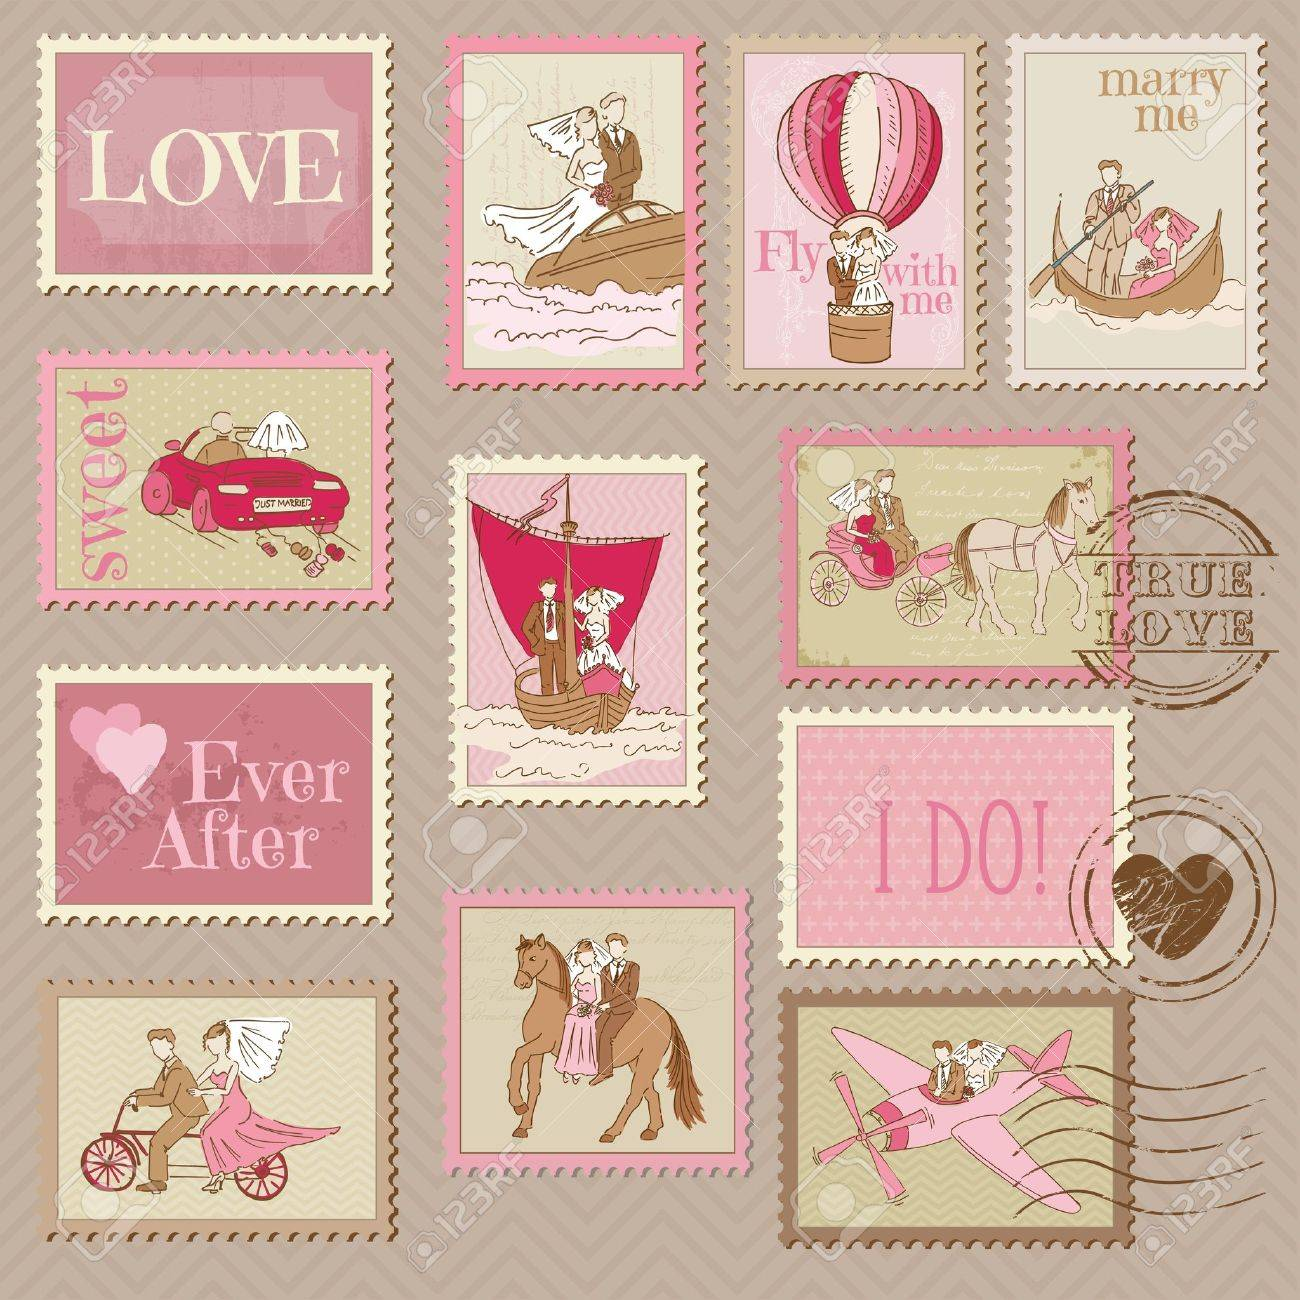 prweb wedding postage stamps Wedding Postage Stamp SamplerThis is a sampling of the many customizable wedding stamps available from ArtisticPostage com